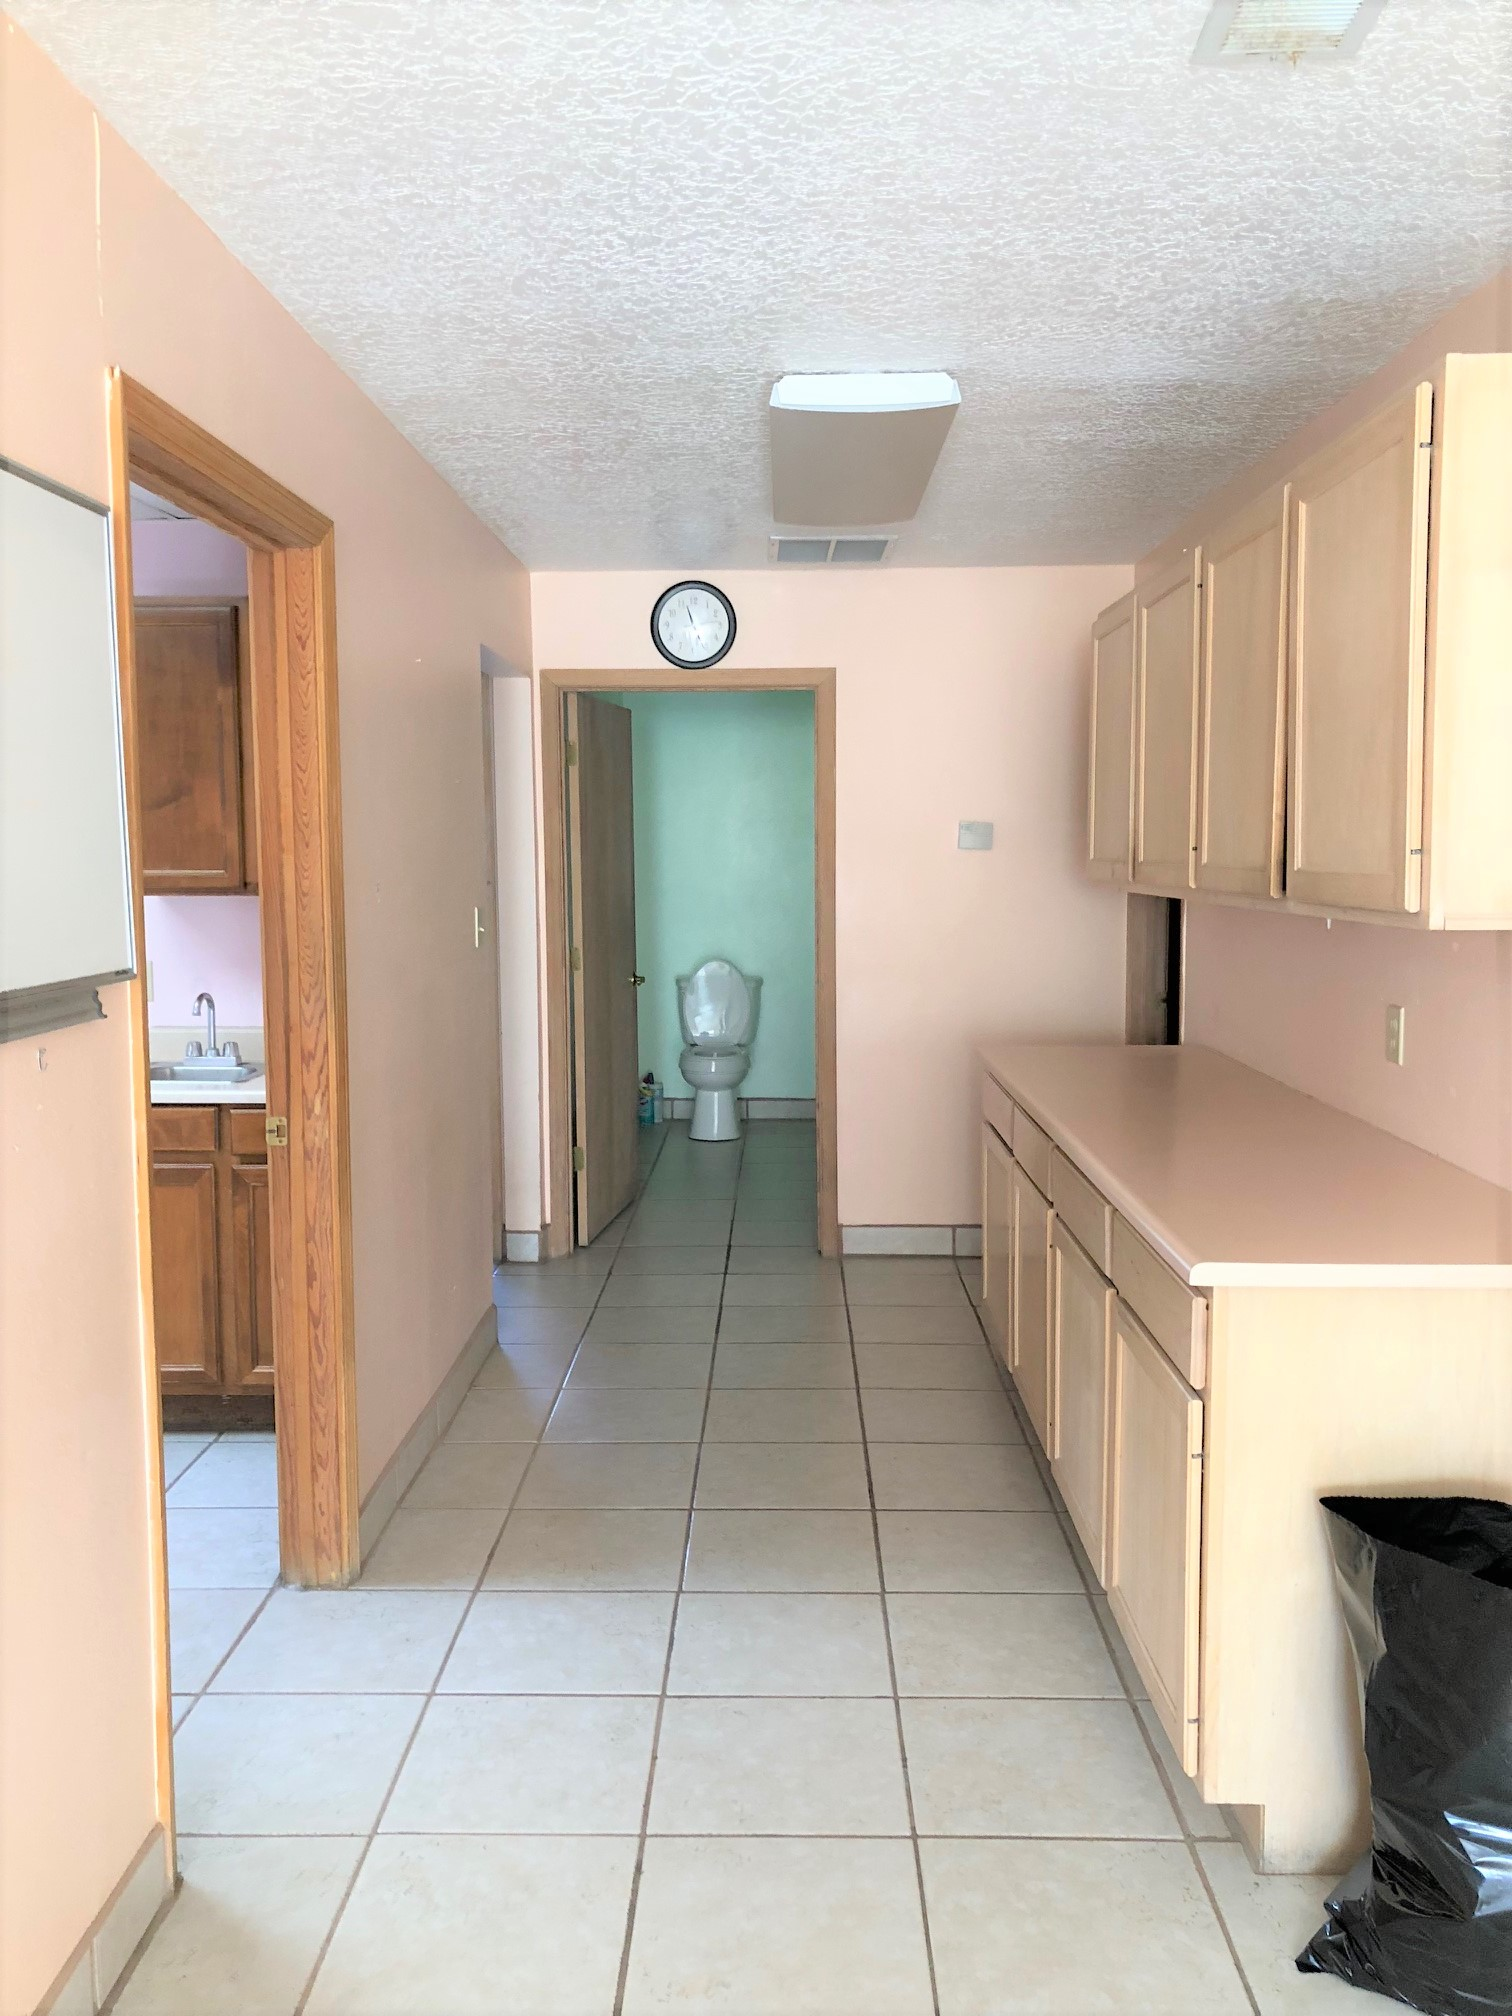 4035 Peggy Rd, Rio Rancho, New Mexico 87124, Free-Standing Office, For Sale, Day Care, Garden Facility